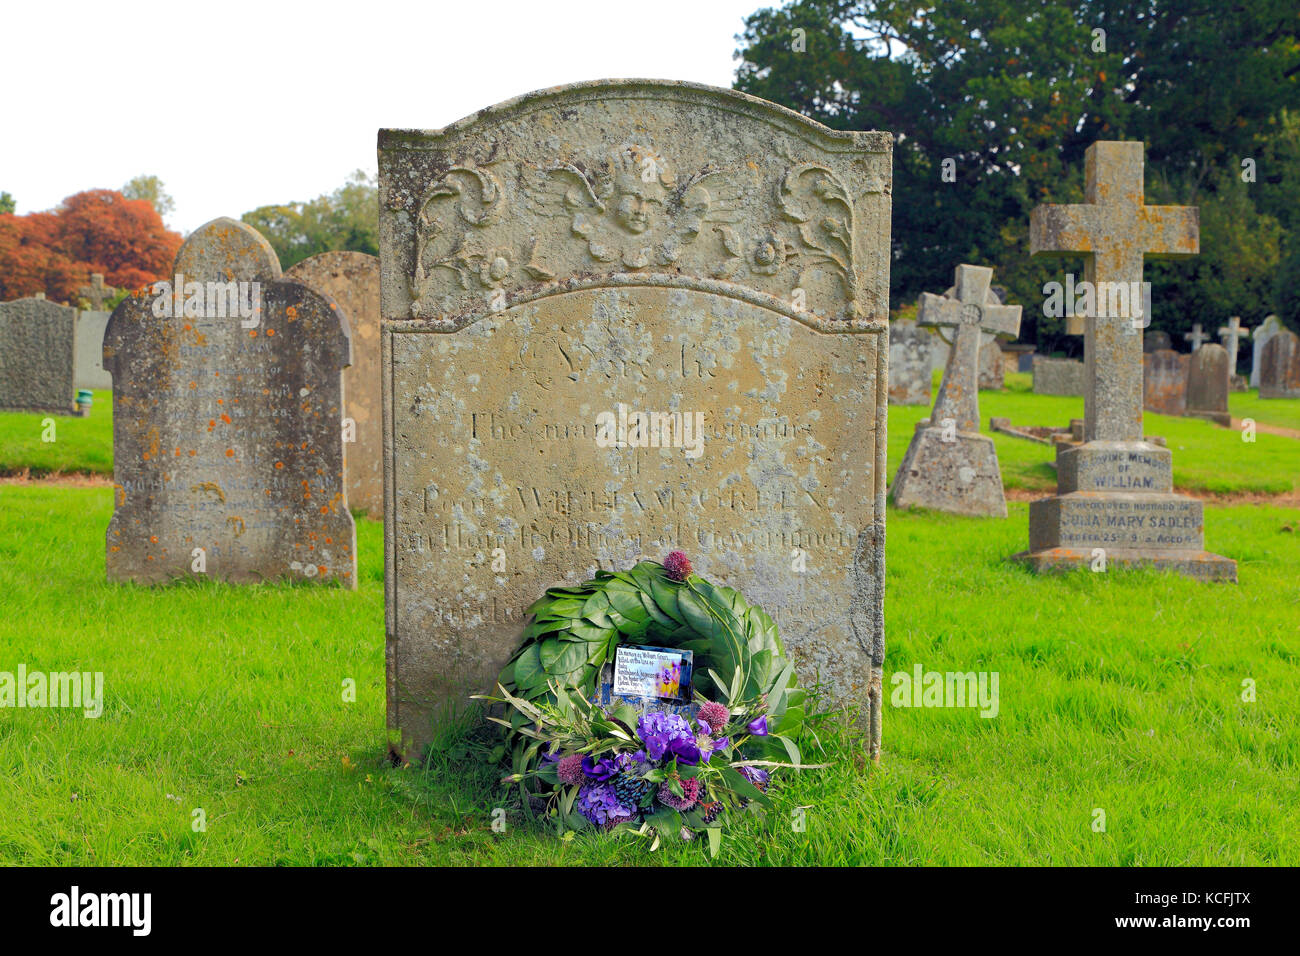 William Green gravestone, 18th century Customs Officer, murdered by Smugglers in 1784, with Border Force wreath, - Stock Image